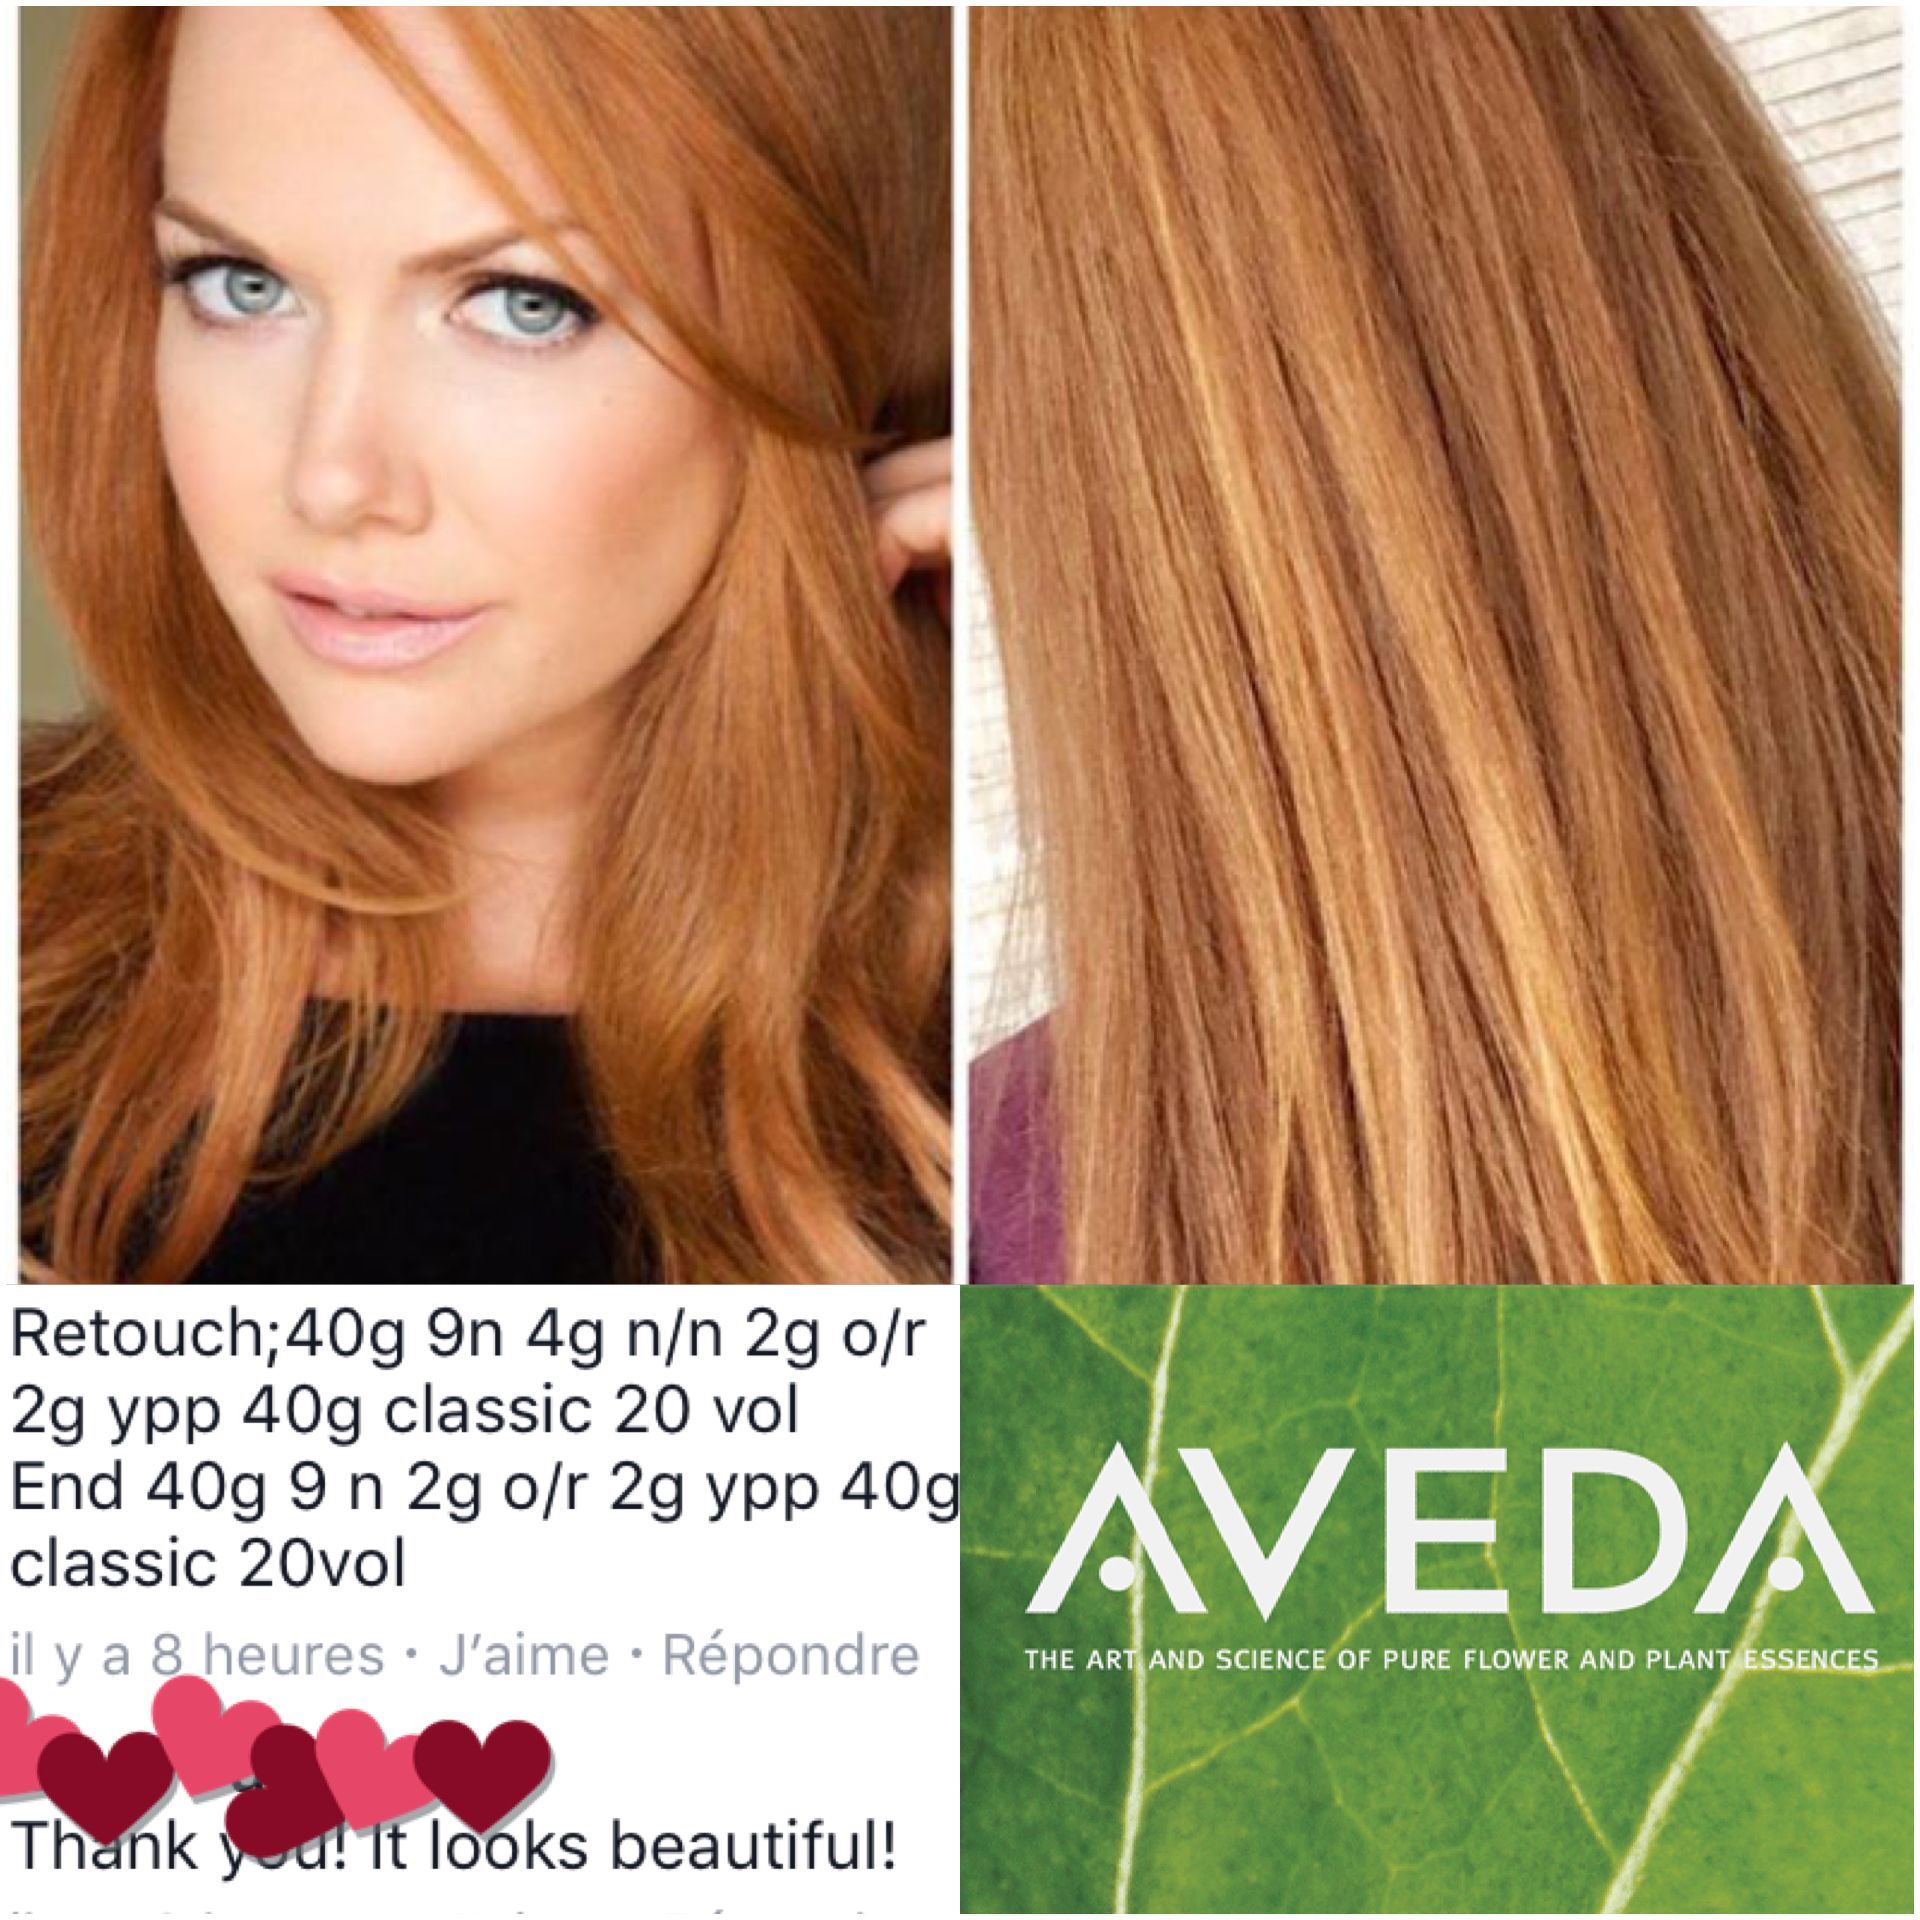 Pin By Jaxq E On Aveda In 2020 Aveda Hair Color Aveda Hair Hair Color Chart